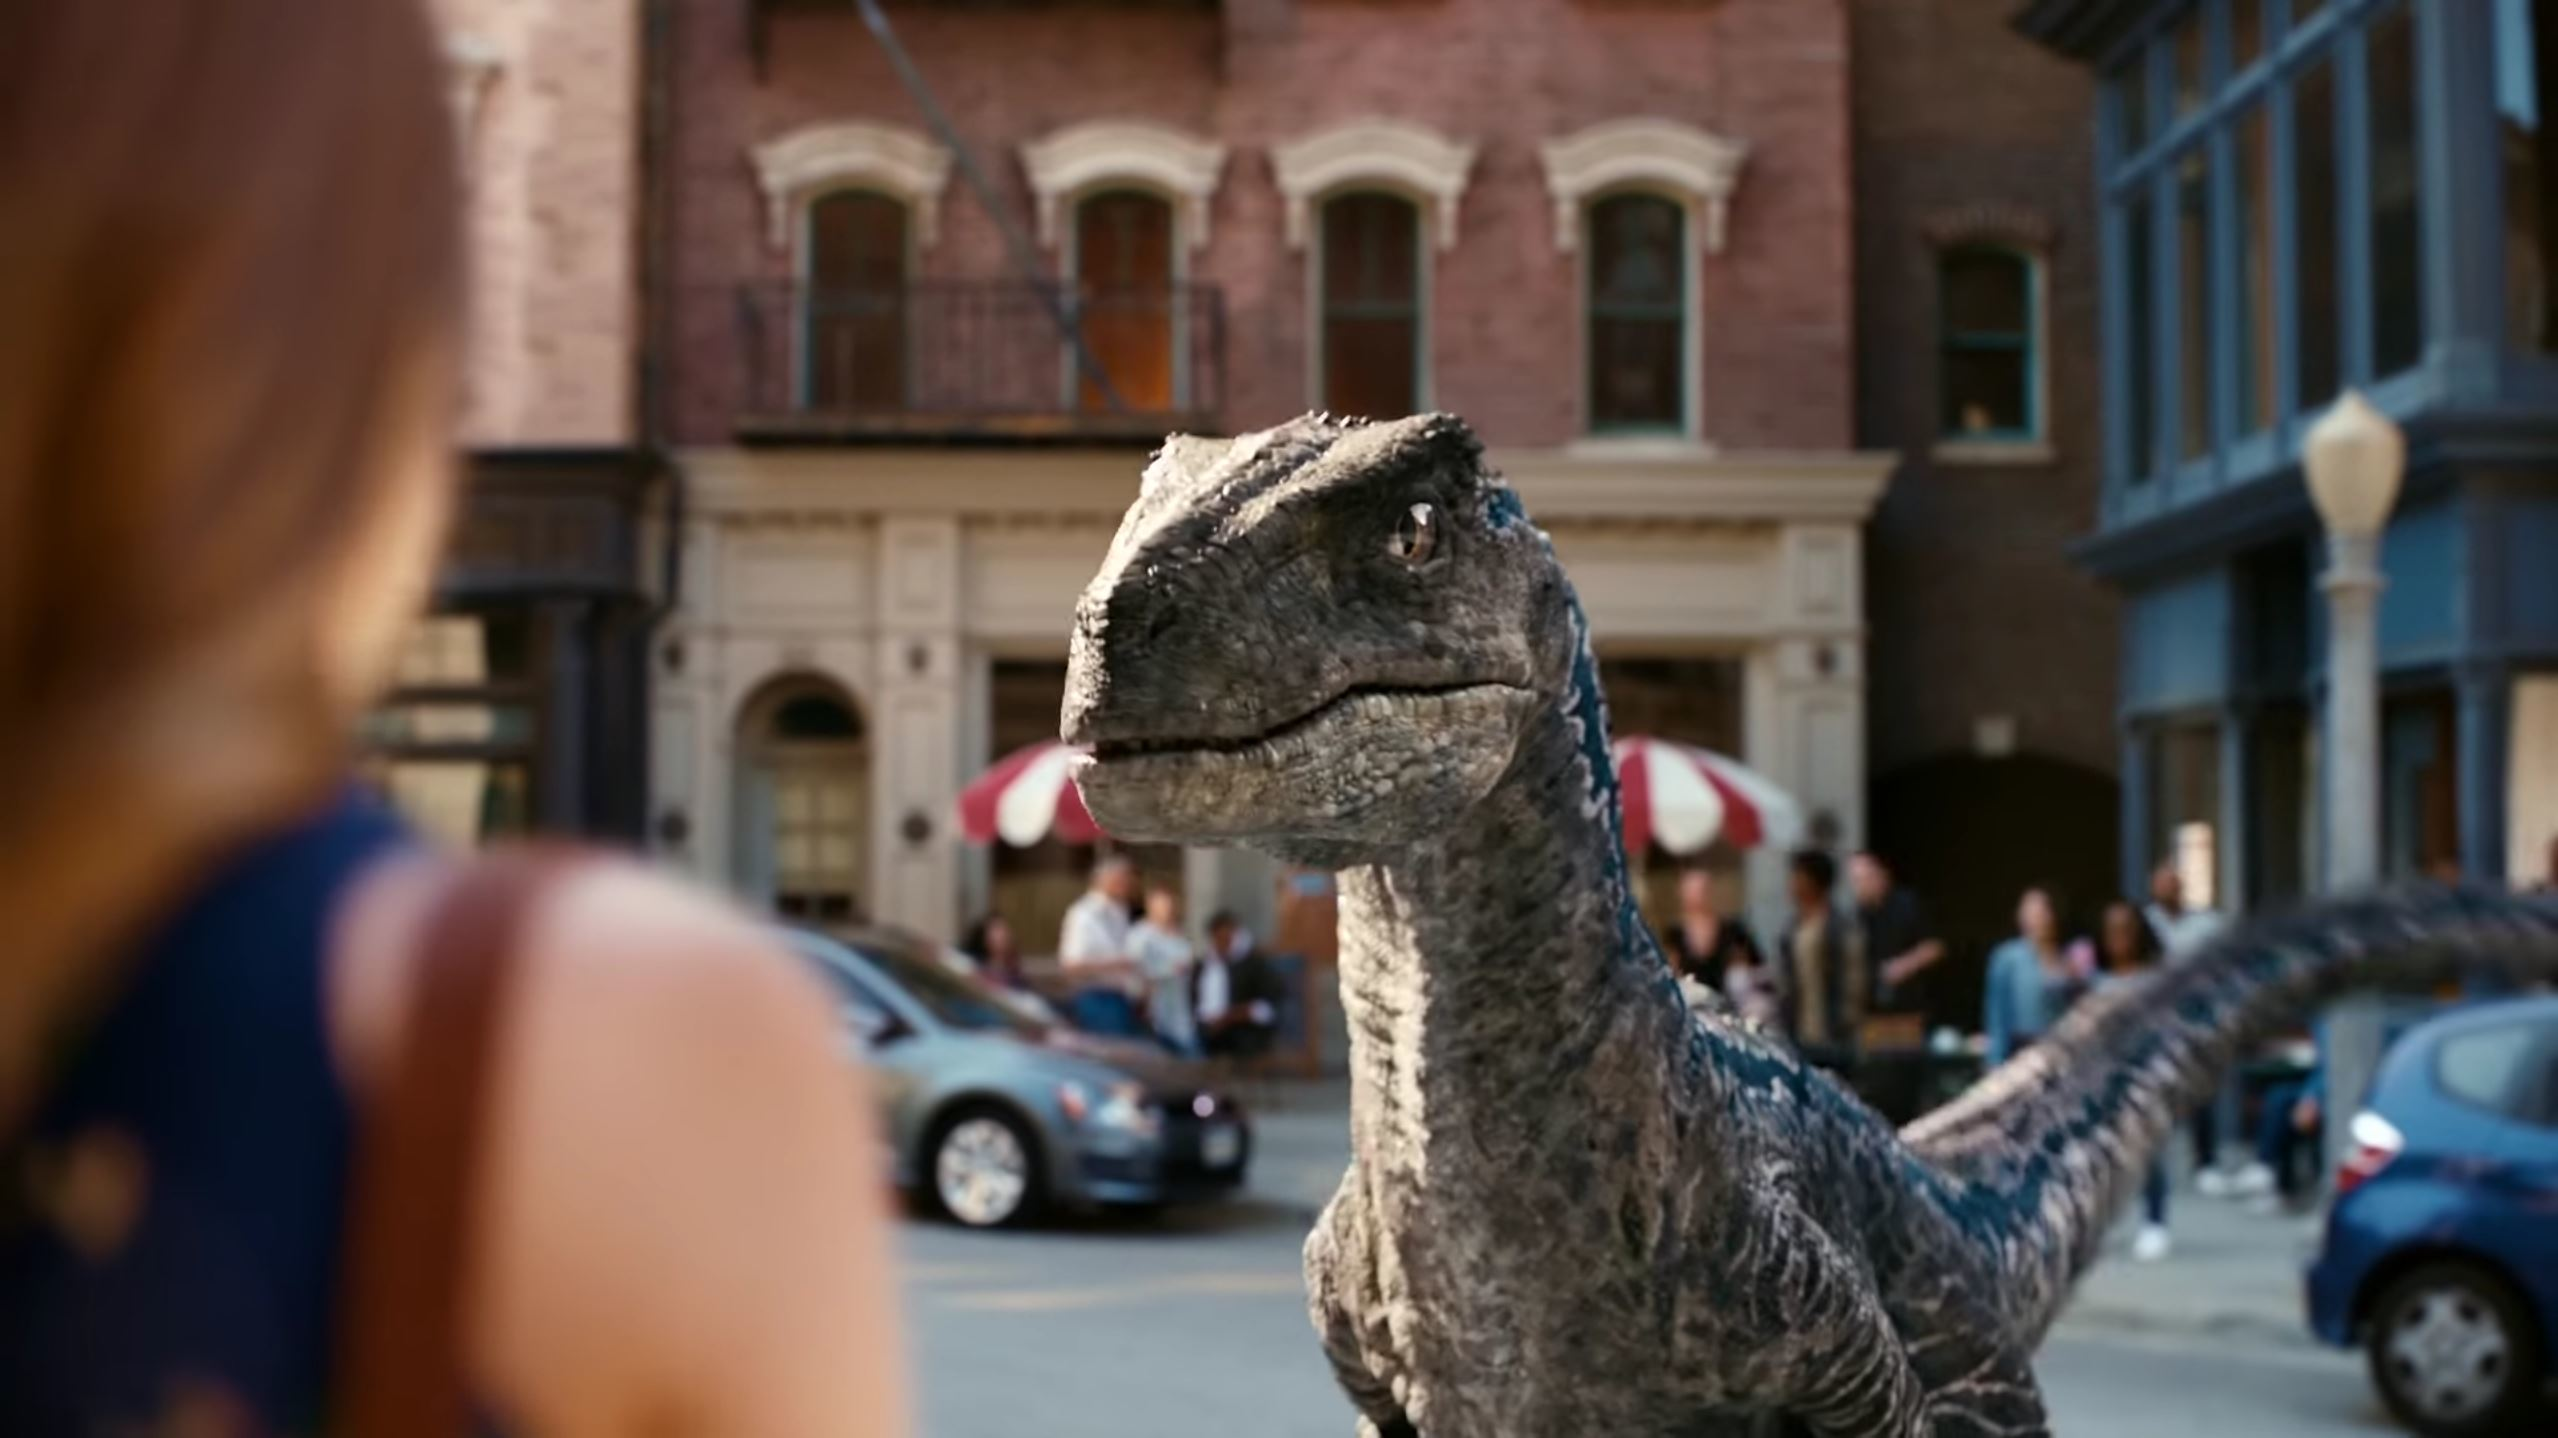 A velociraptor stares down a shopper in an urban setting in the live-action advertisement for Jurassic World Alive.